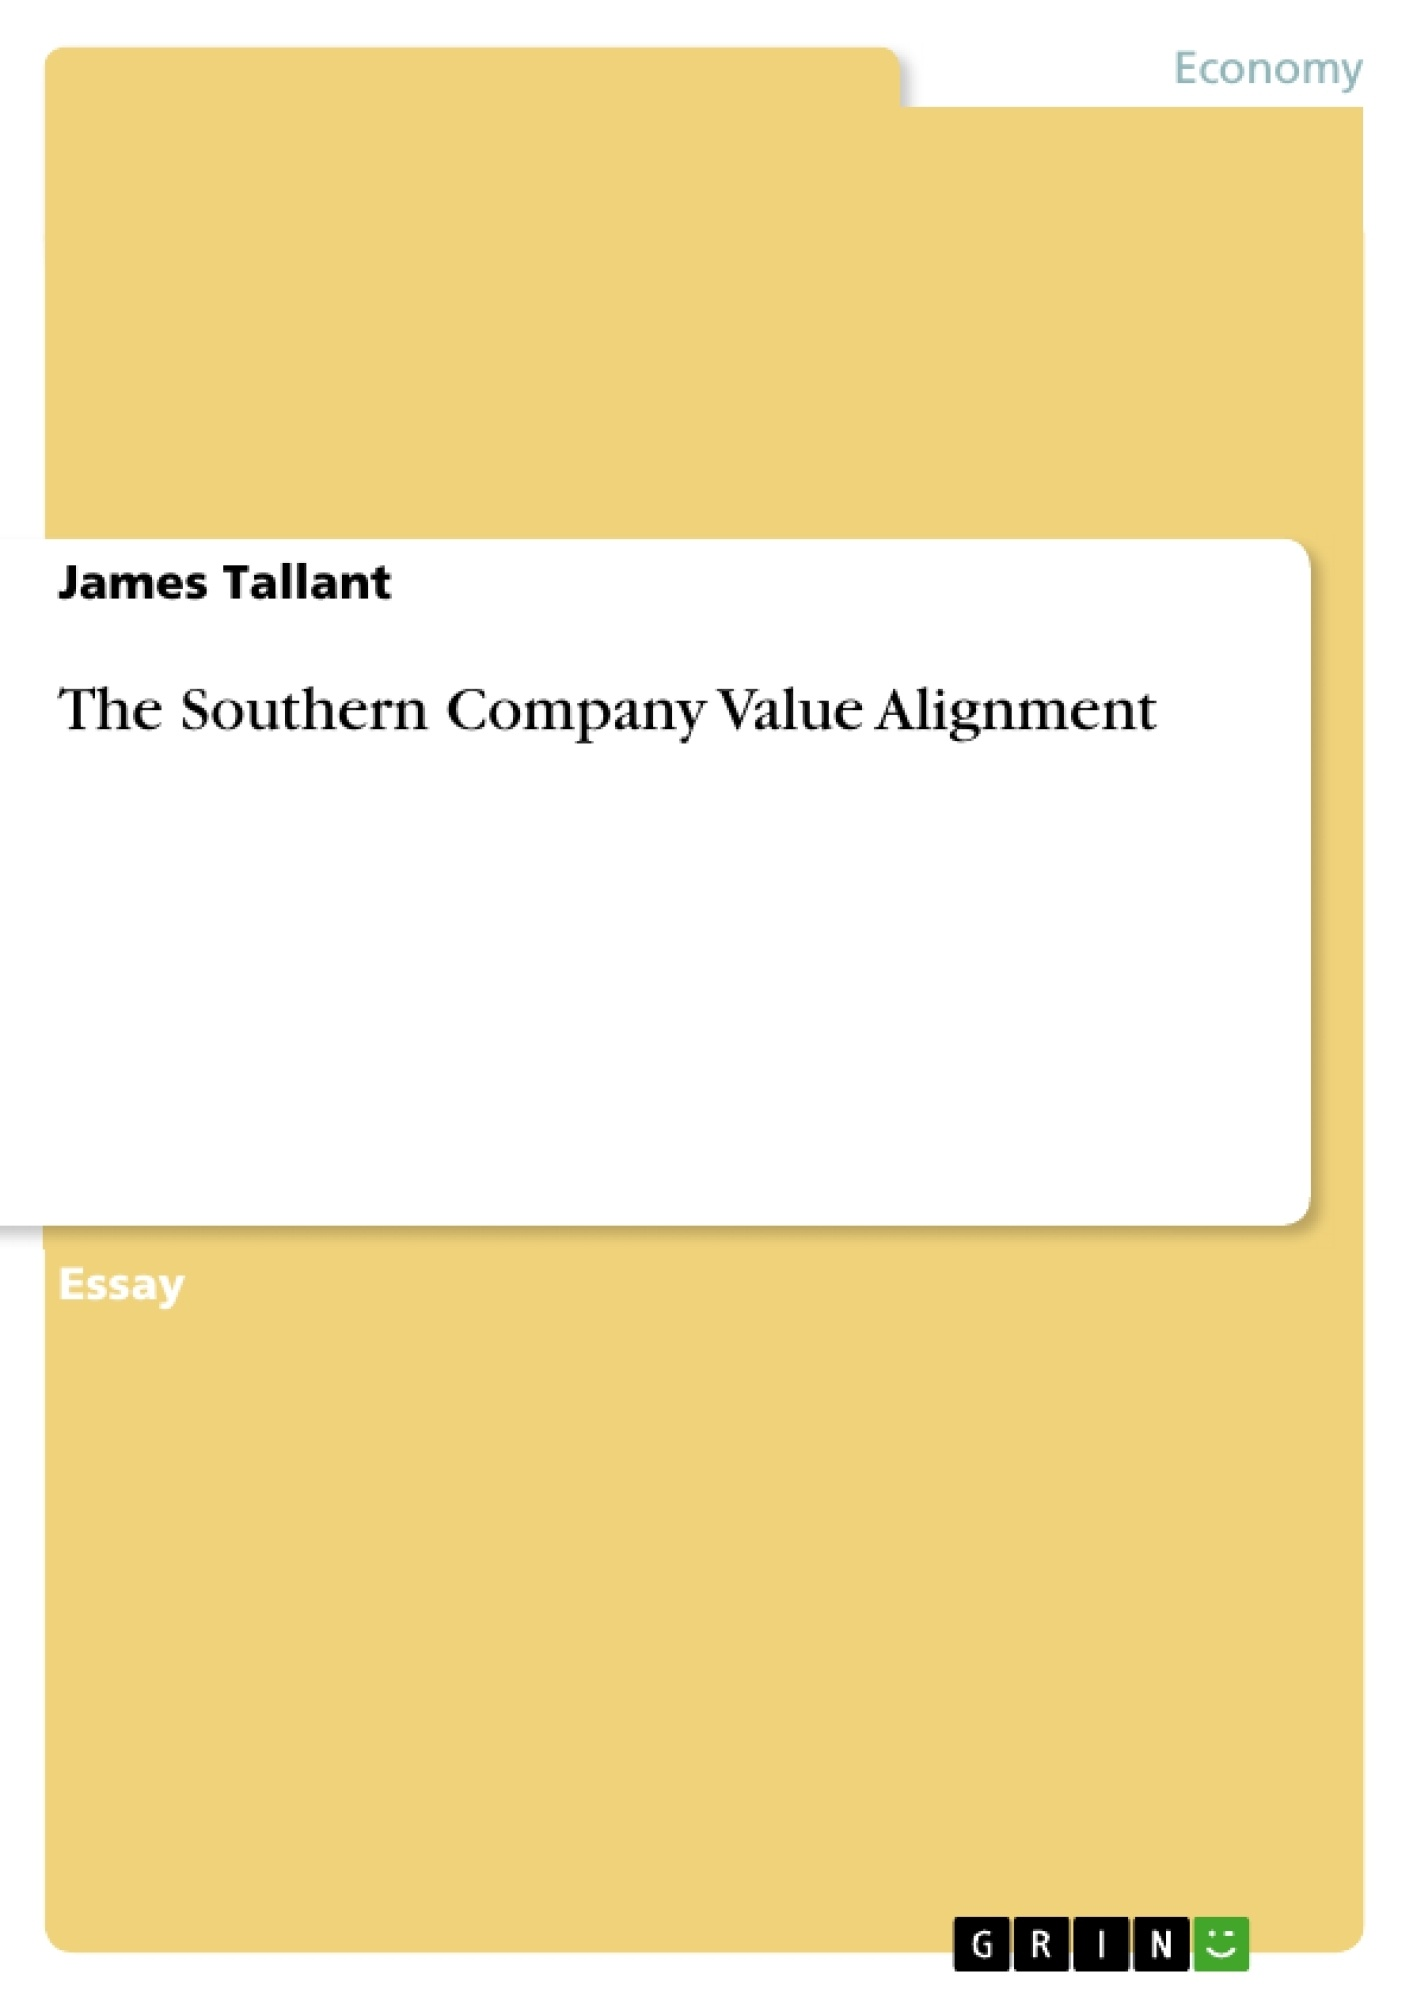 Title: The Southern Company Value Alignment